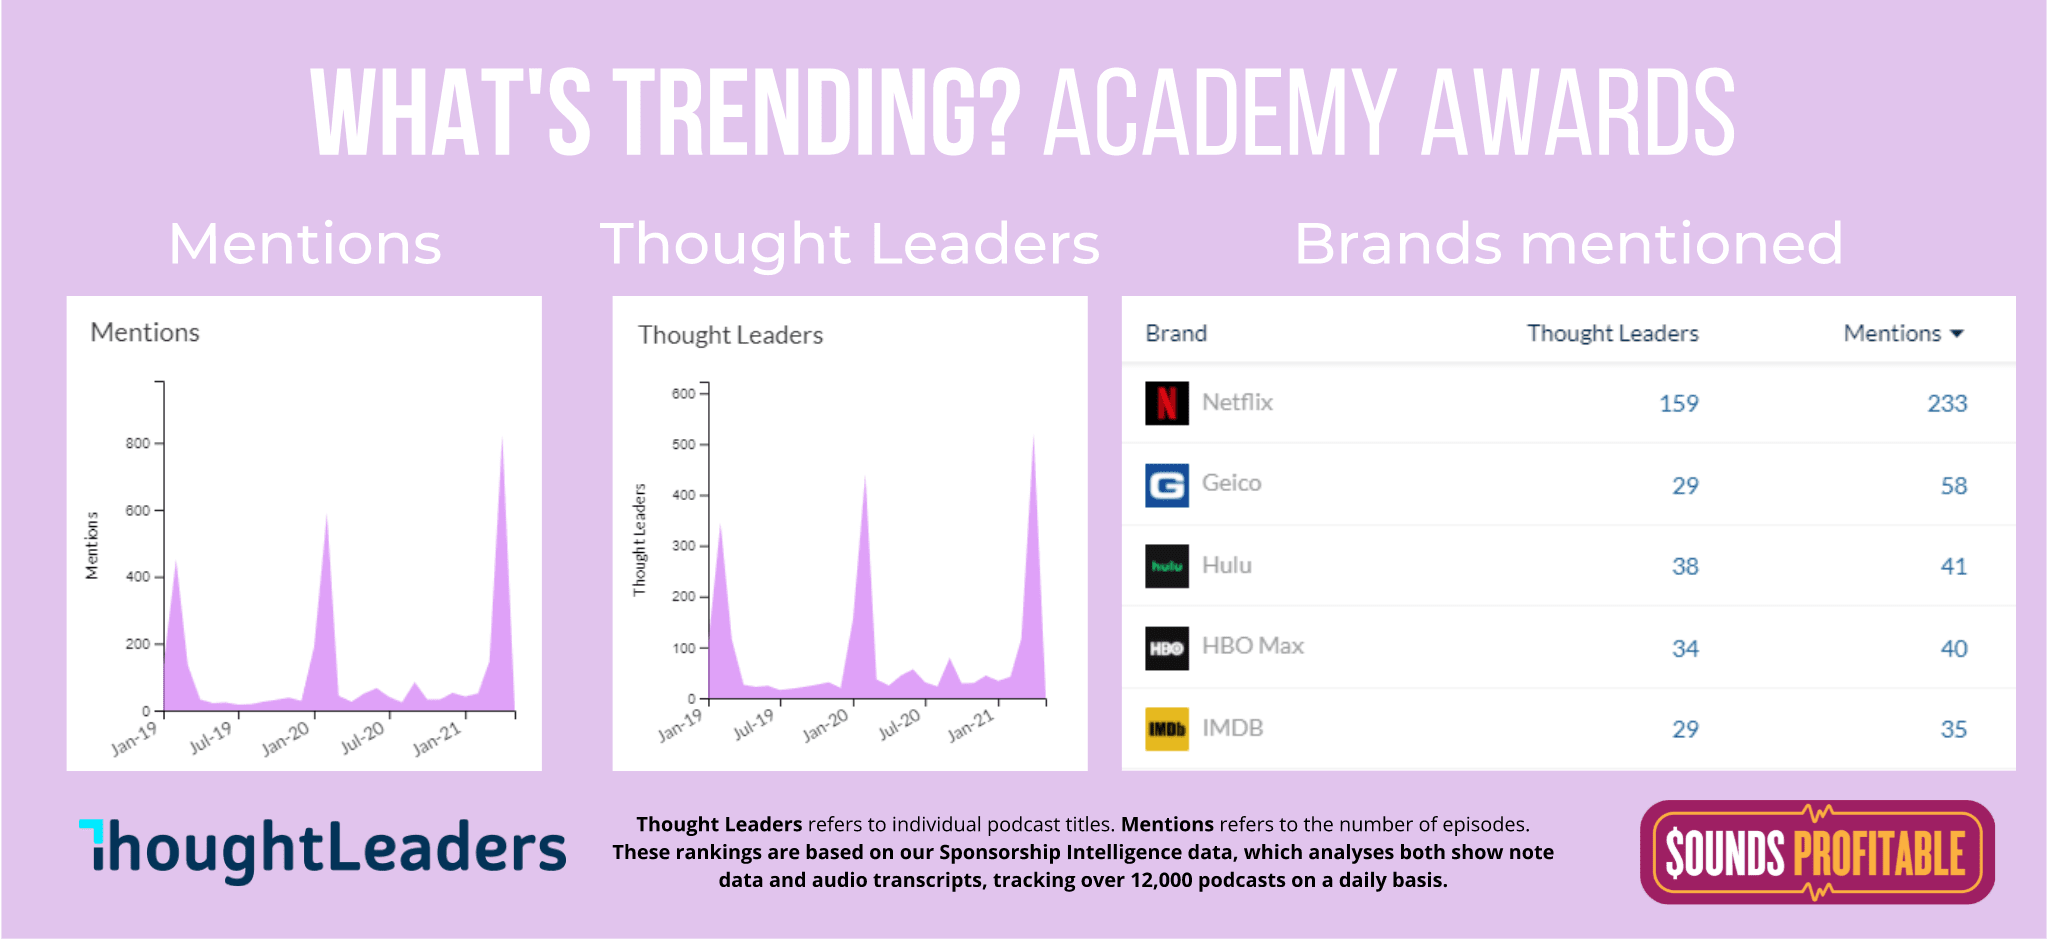 A set of graphs showing mentions of the Academy Awards, including podcasts. The mentions spike around the time of the awards every year, and are growing. Netflix is the top brand with 233 mentions overall.